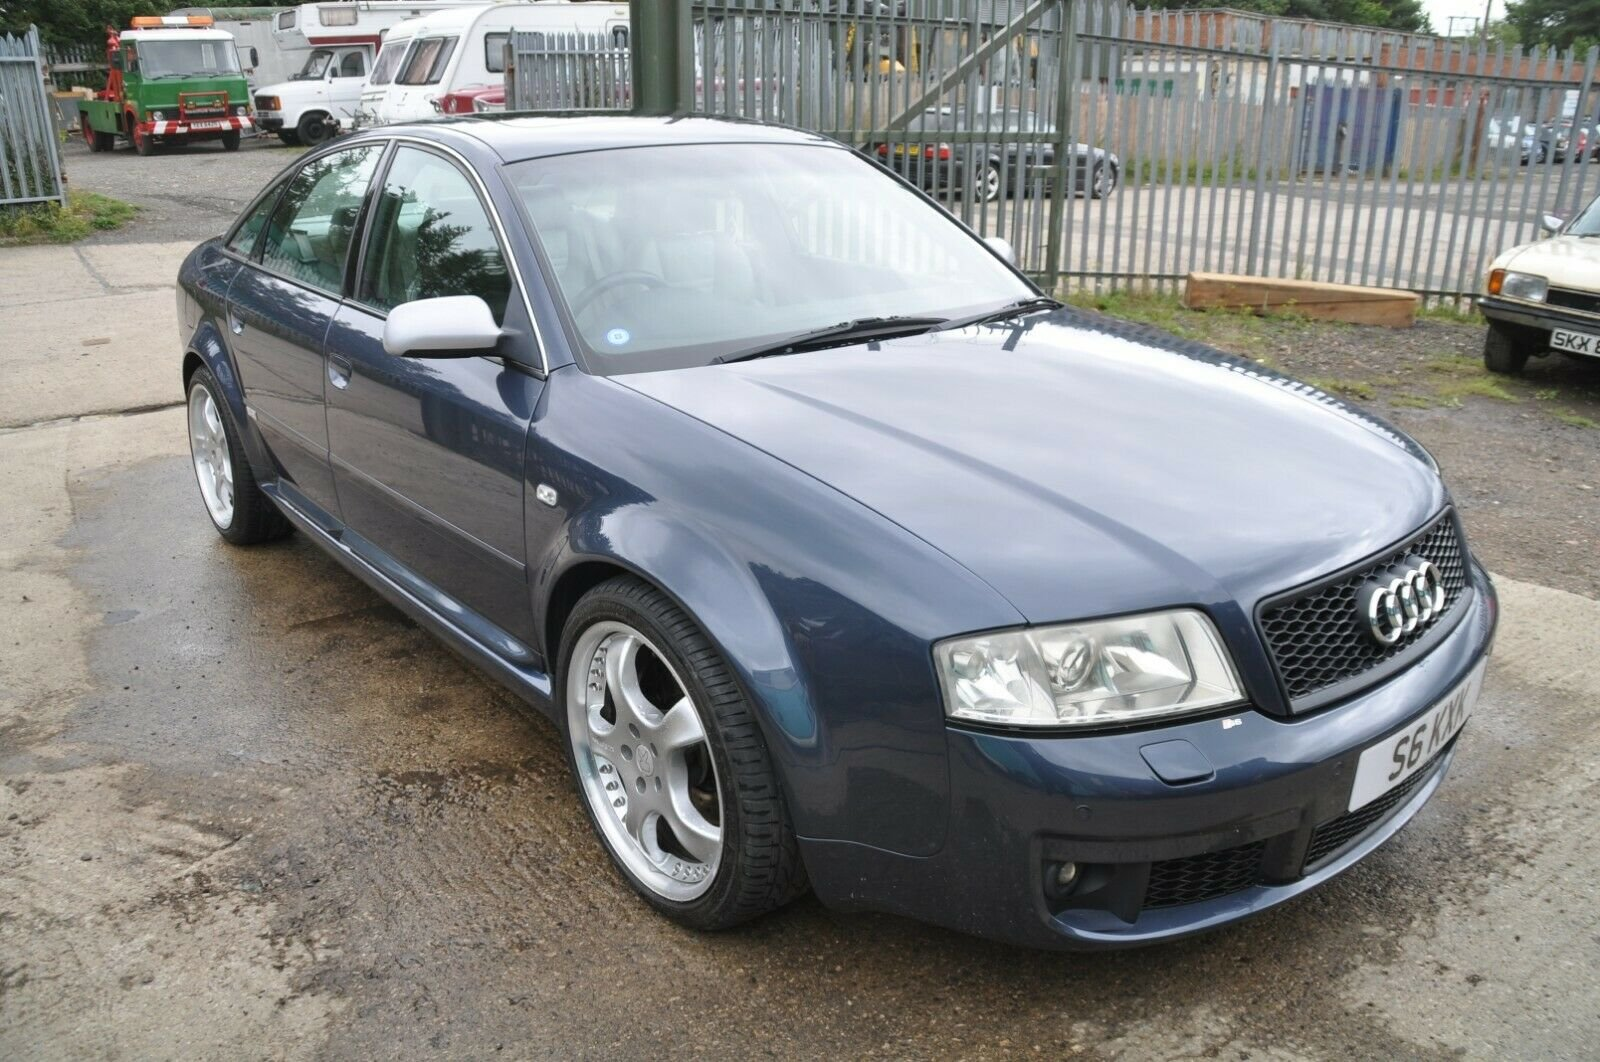 2002 AUDI S6 LOW MILES LEATHER RECAROS BOSE STAINLESS EXHAUSAUST For Sale (picture 1 of 6)